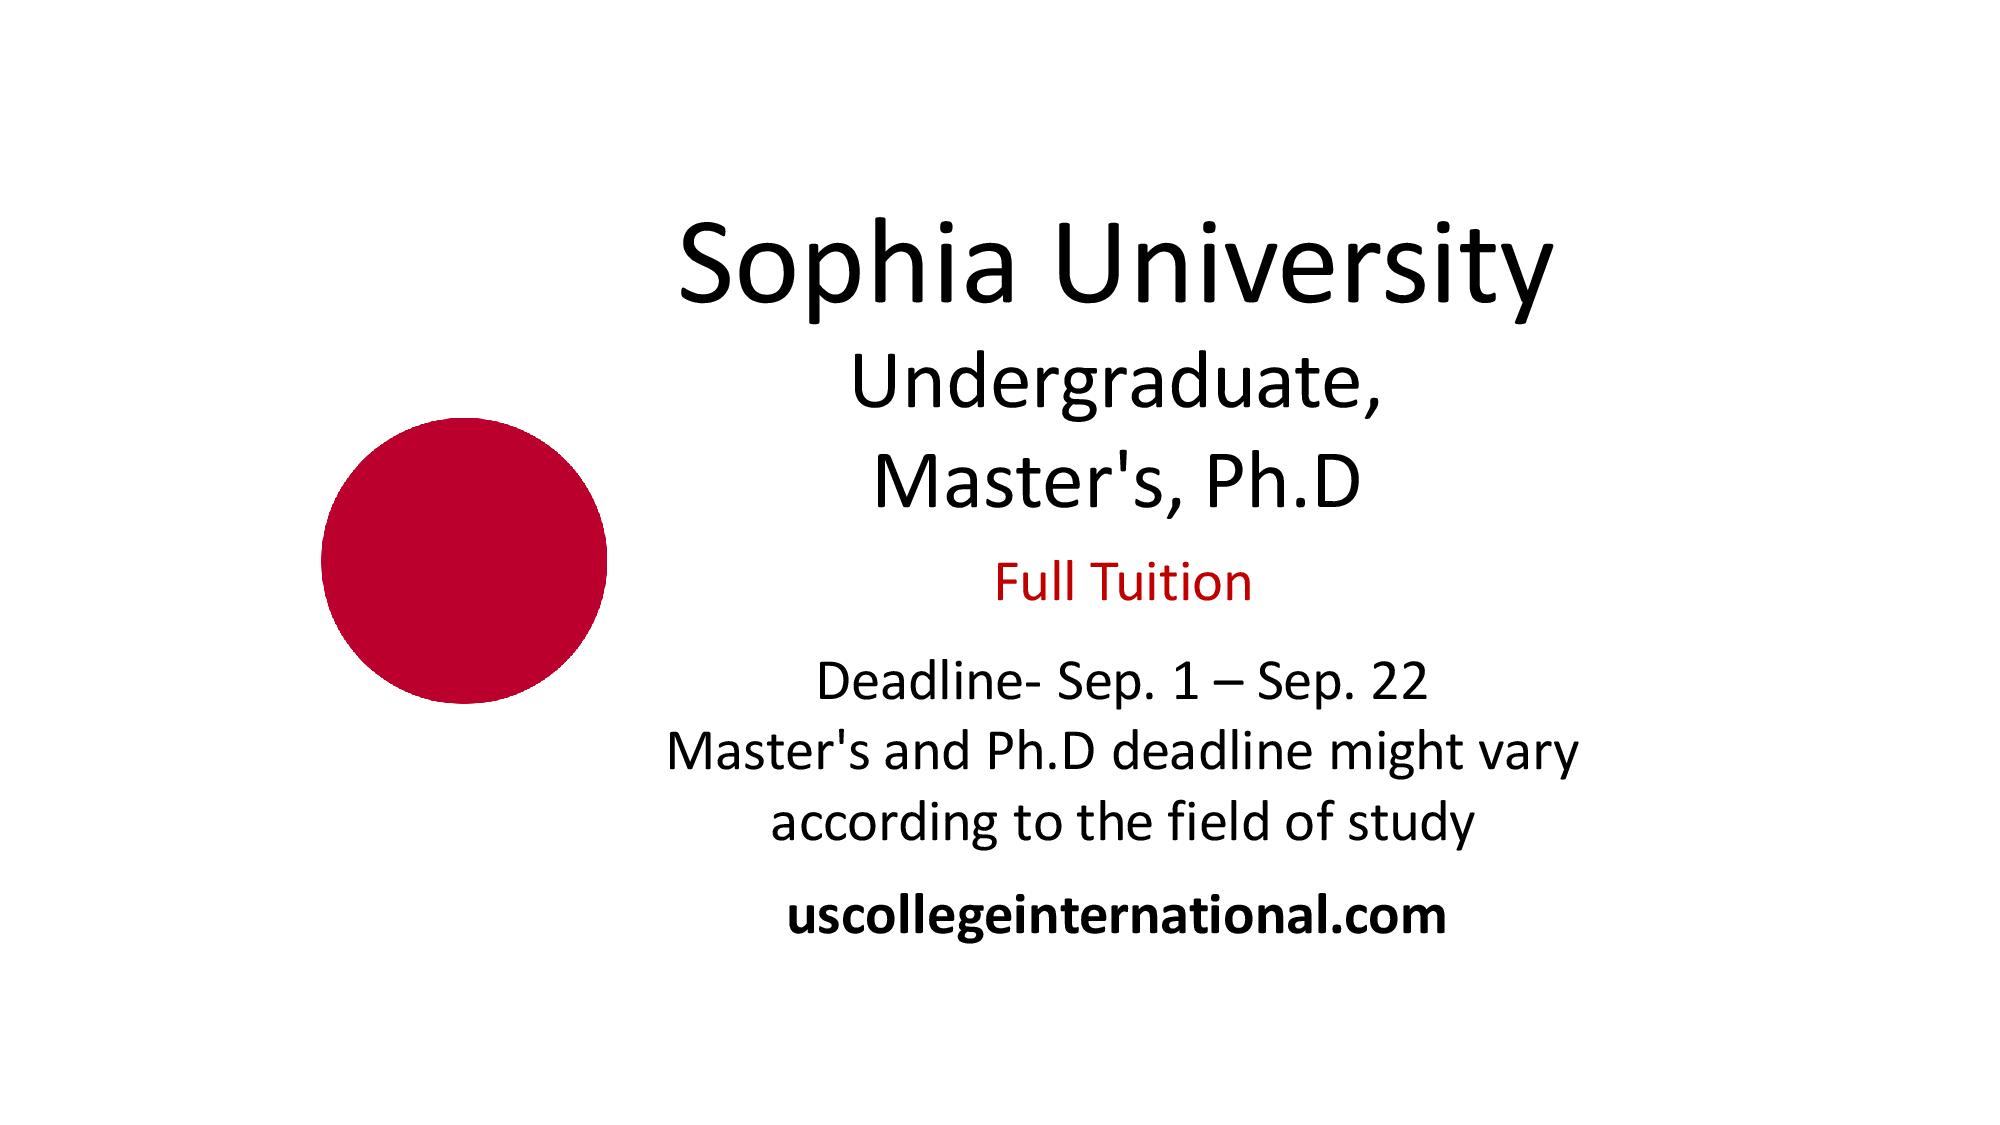 sophia university scholarships